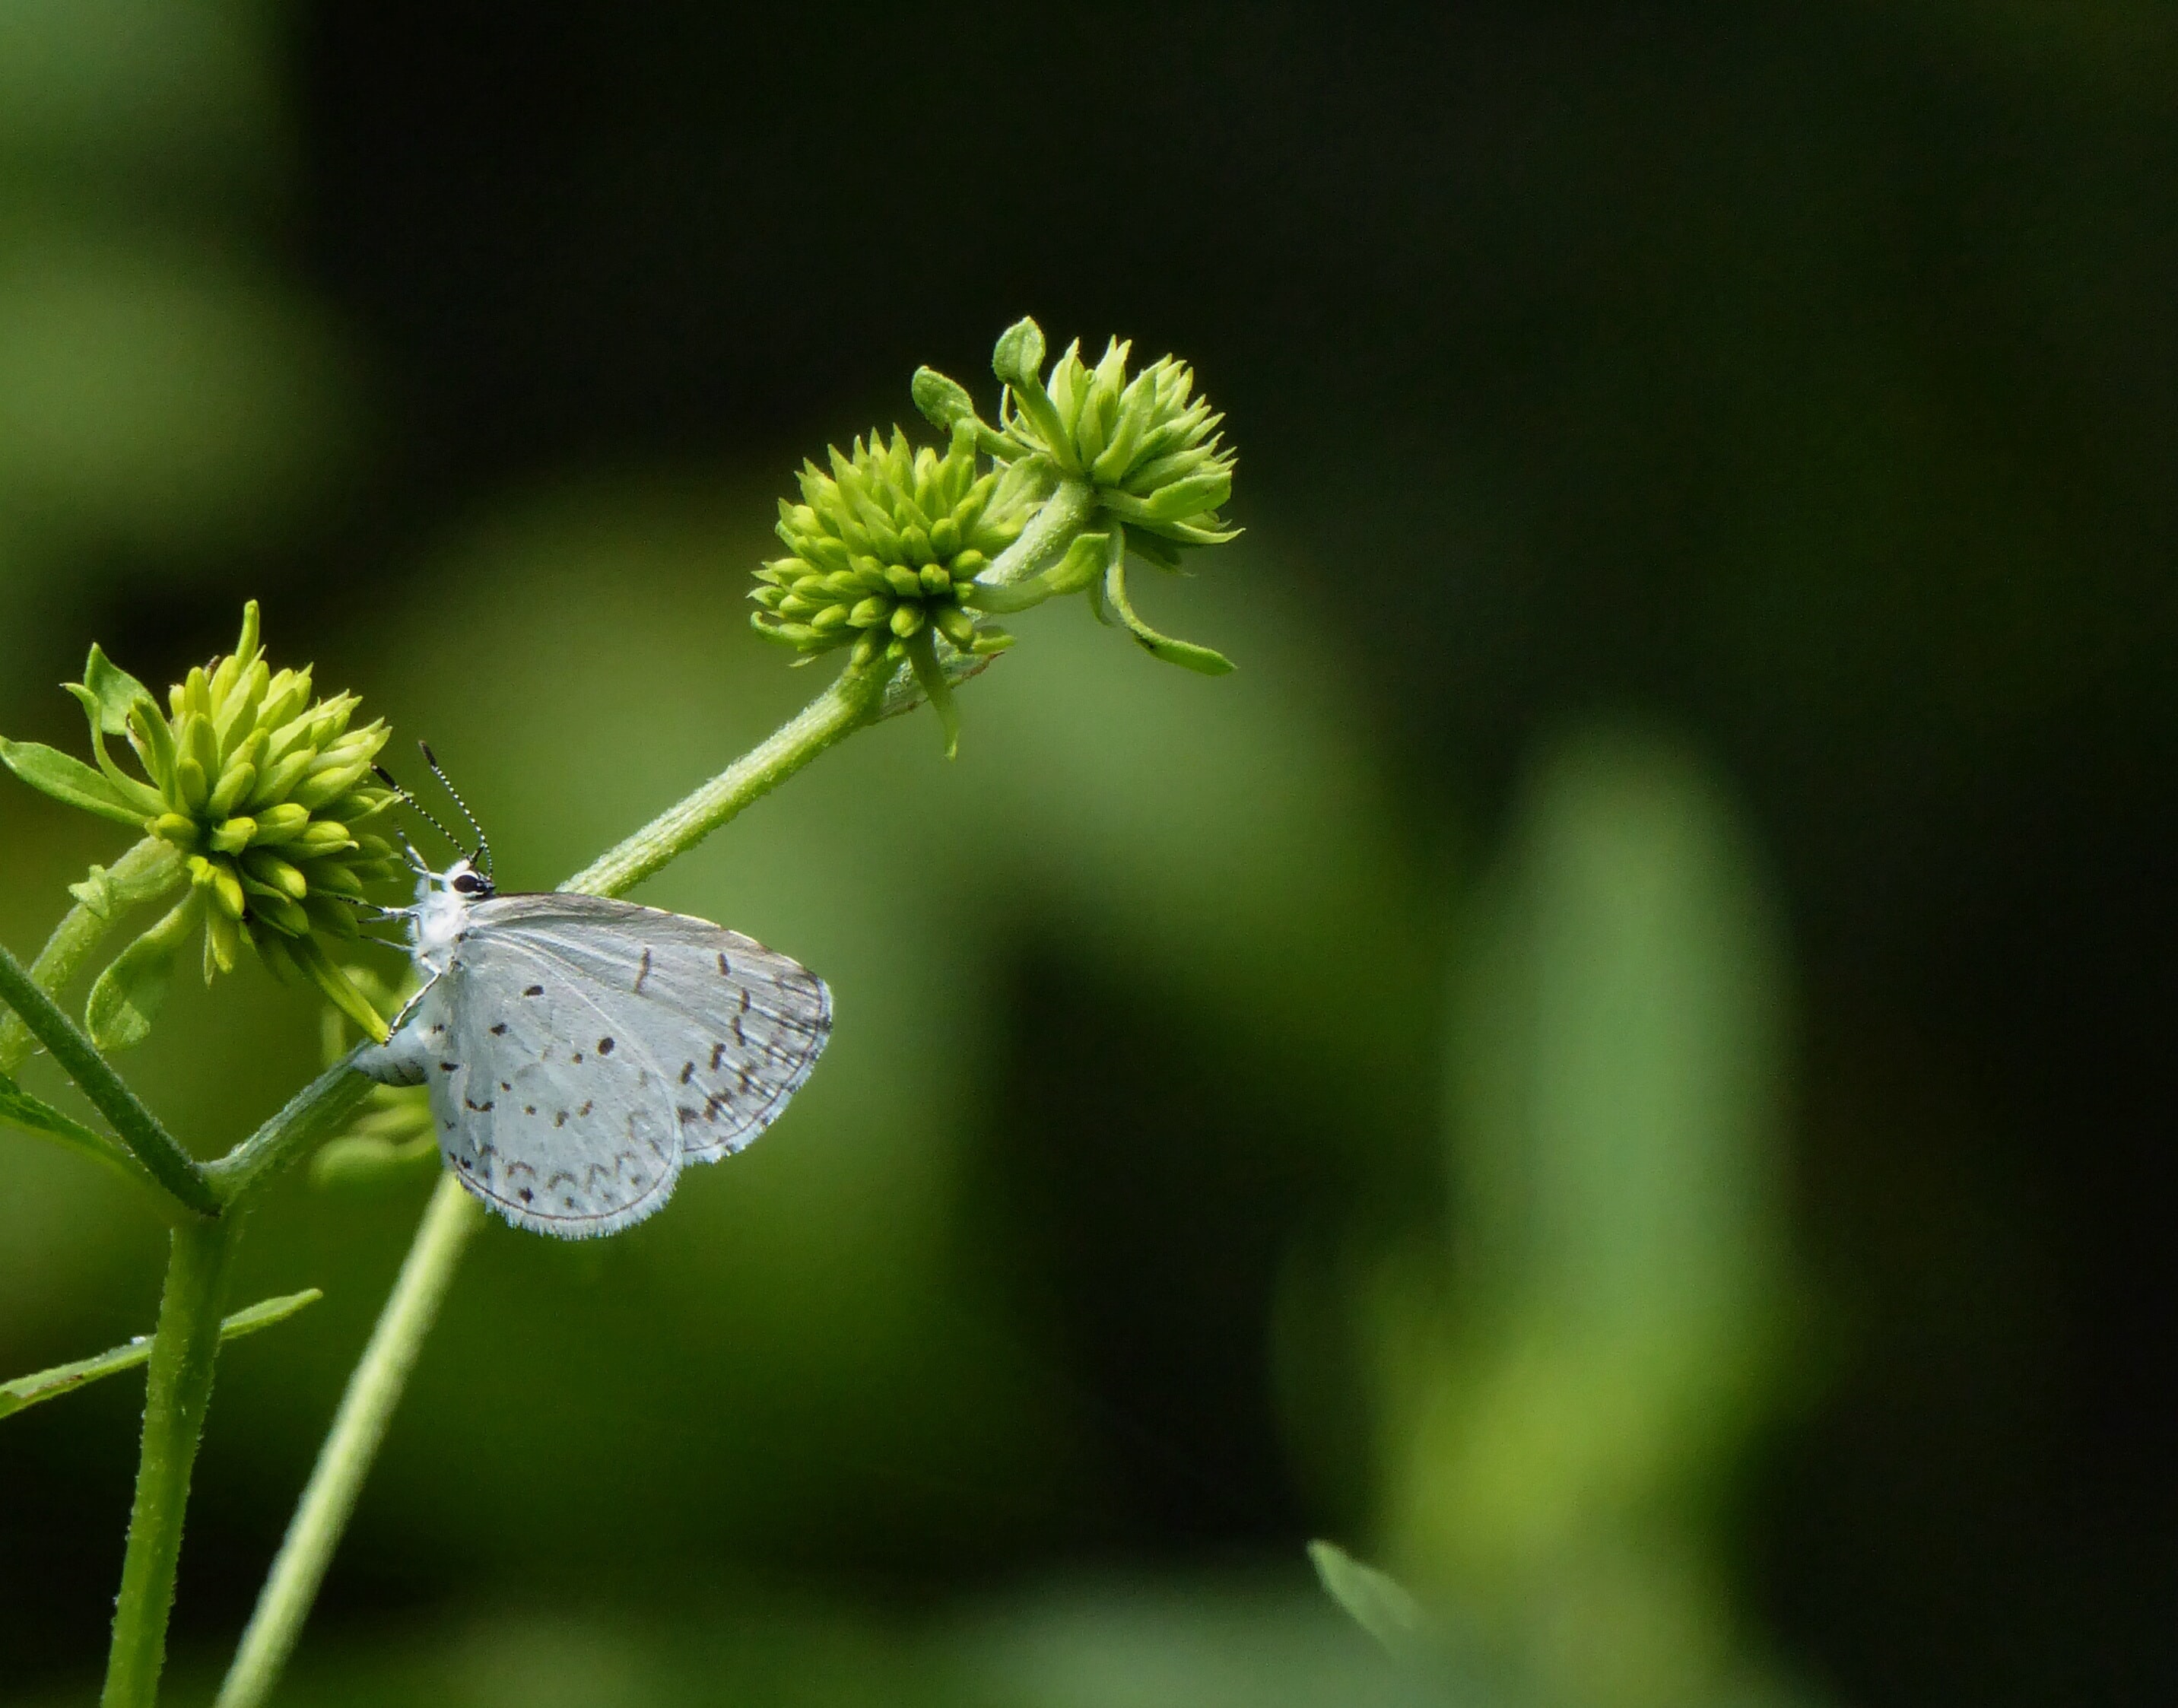 A white butterfly sitting on a green flower head